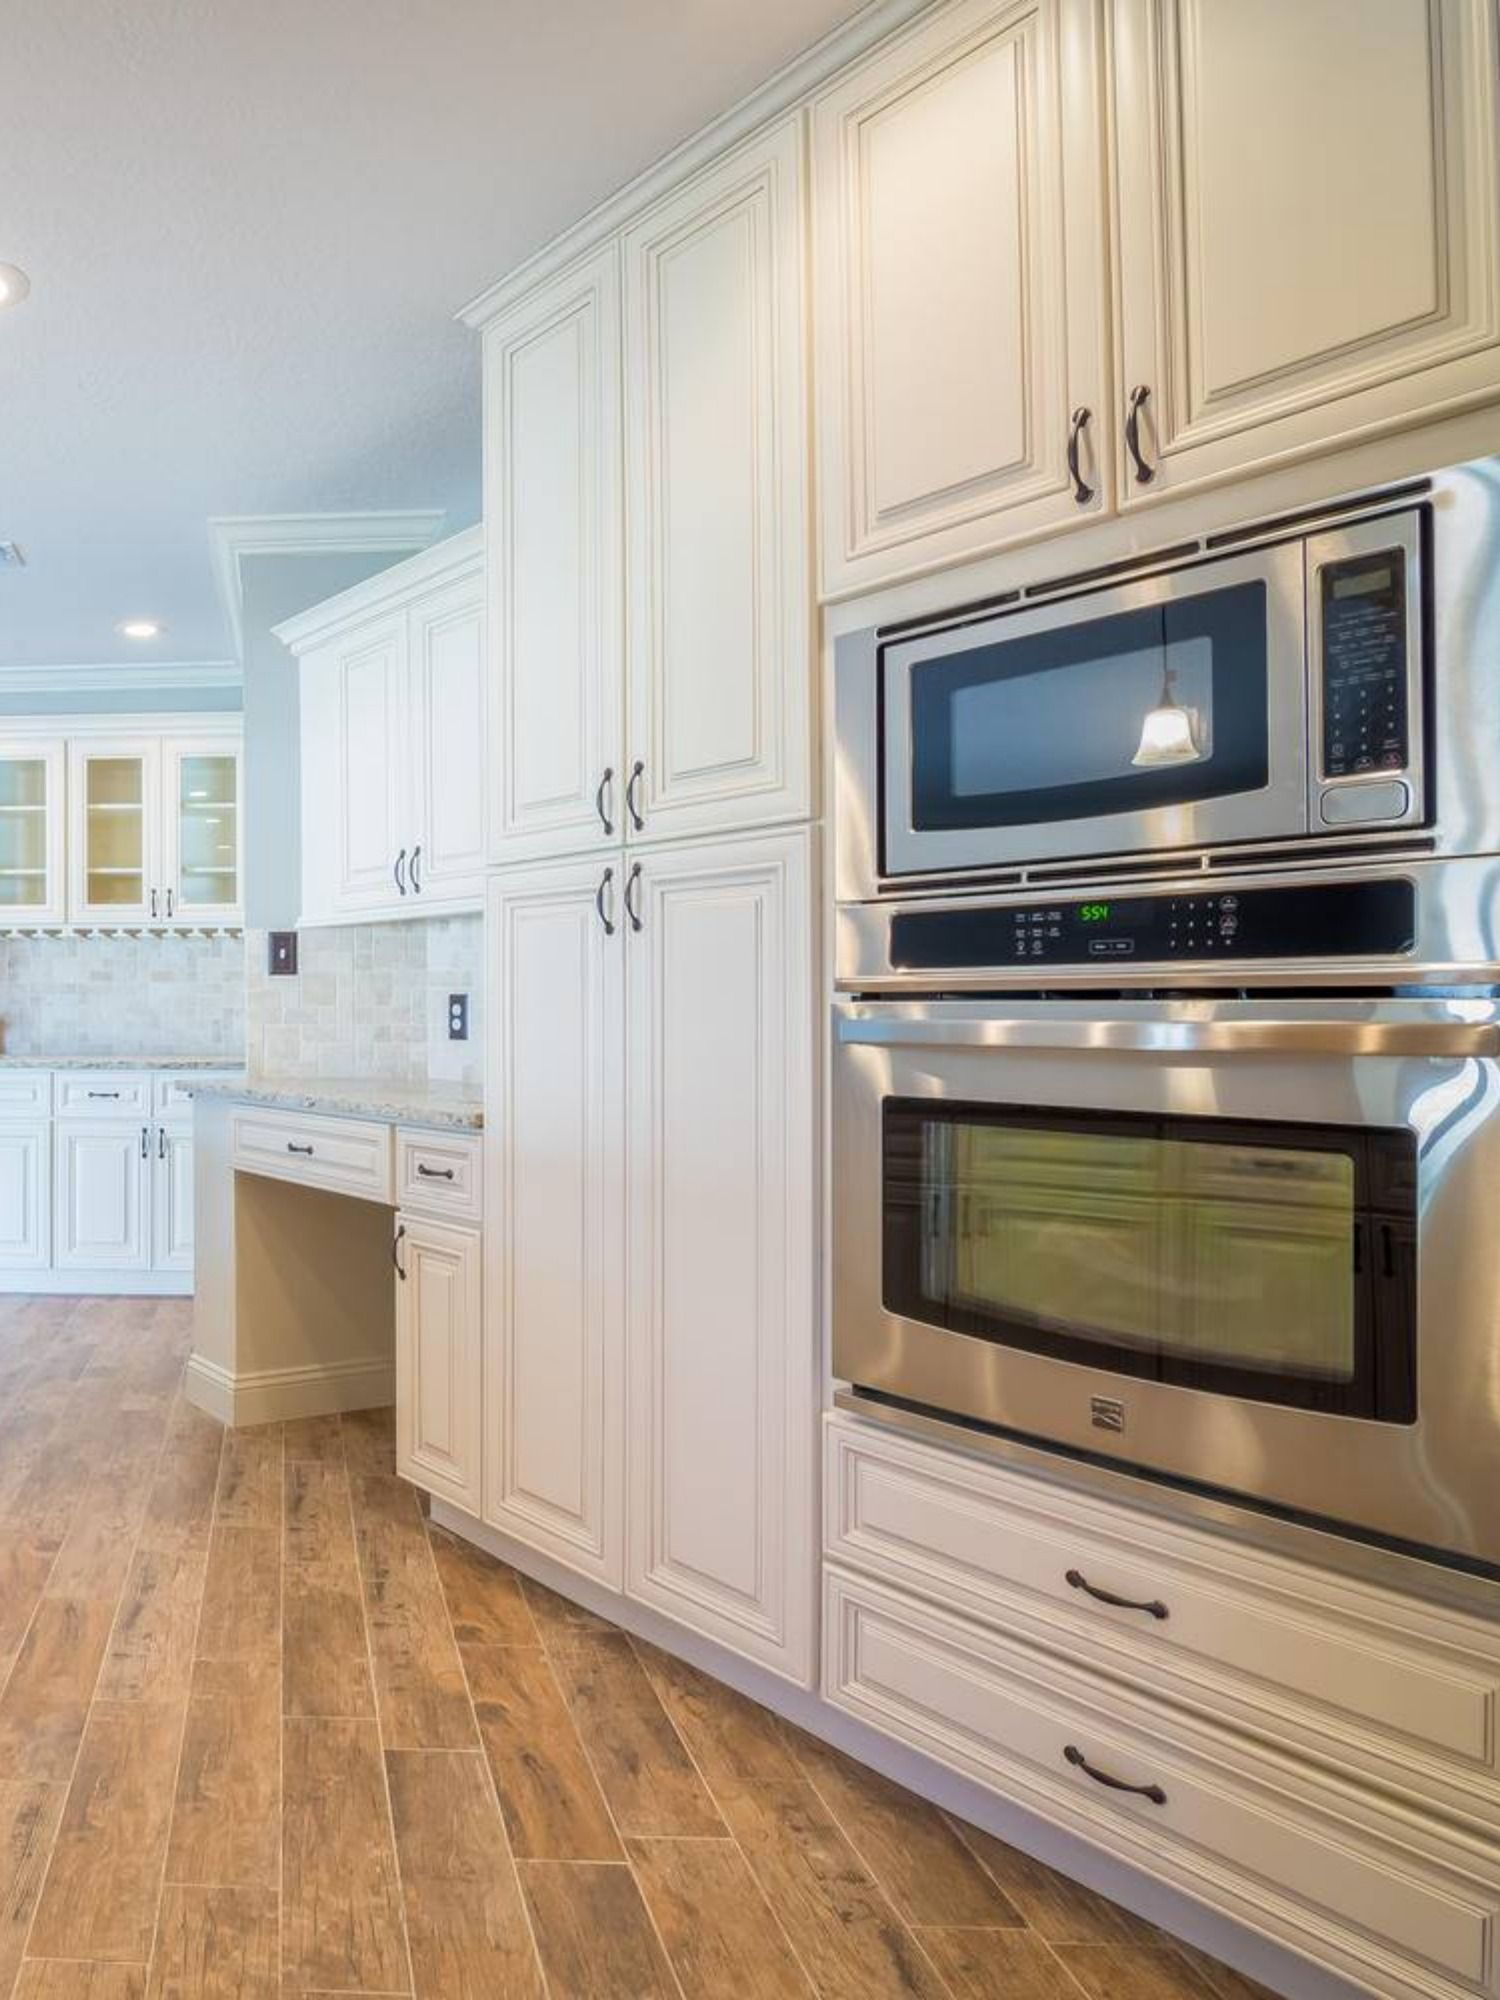 Use These Cabinets To Increase Rental Property Revenue Rental Property Kitchen Cabinet Inspiration Property